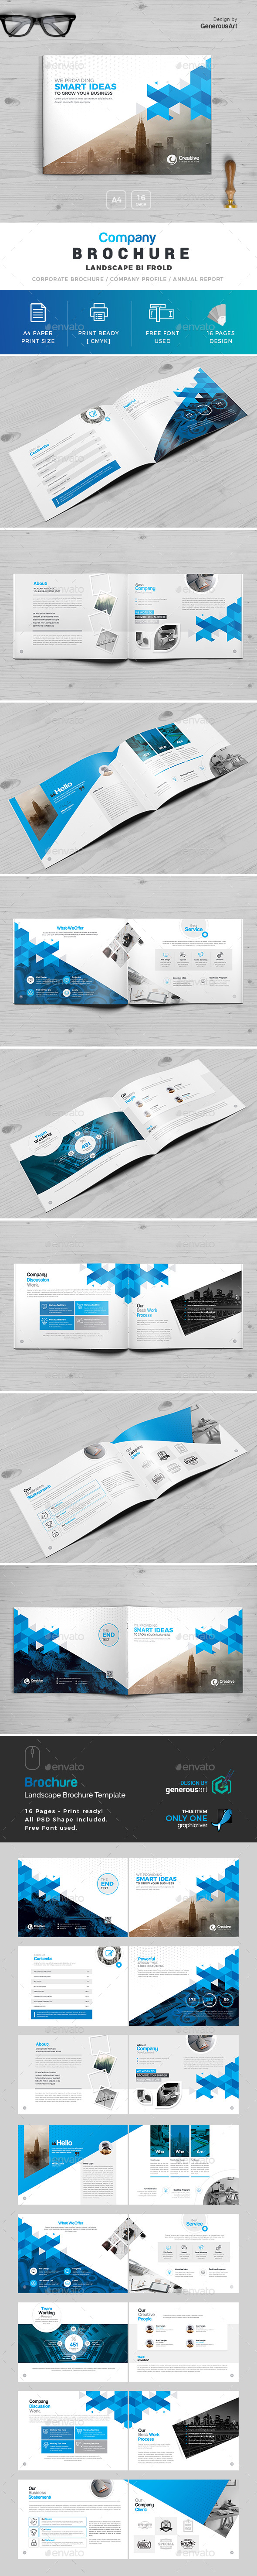 Business Landscape Brochure - Corporate Brochures